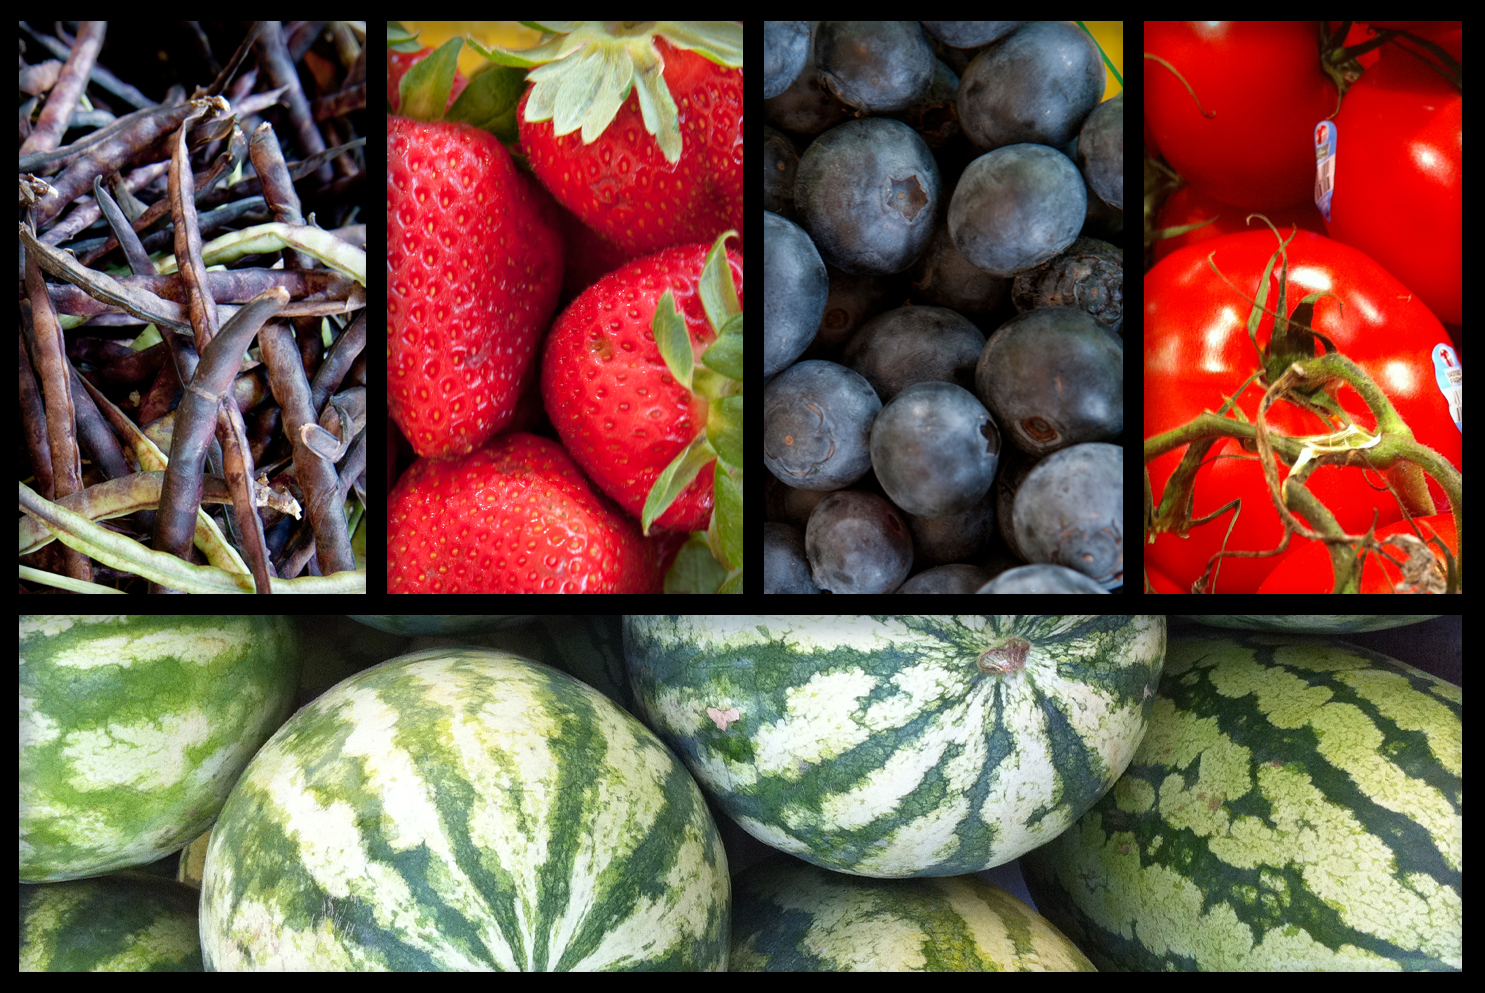 Fresh blueberries and tomatoes rich in antioxidants, naturally sweet strawberries and watermelon laden with fiber, and beans and peas with lots of vitamins and minerals are among fruits and vegetables available now at local Farmer's Markets.